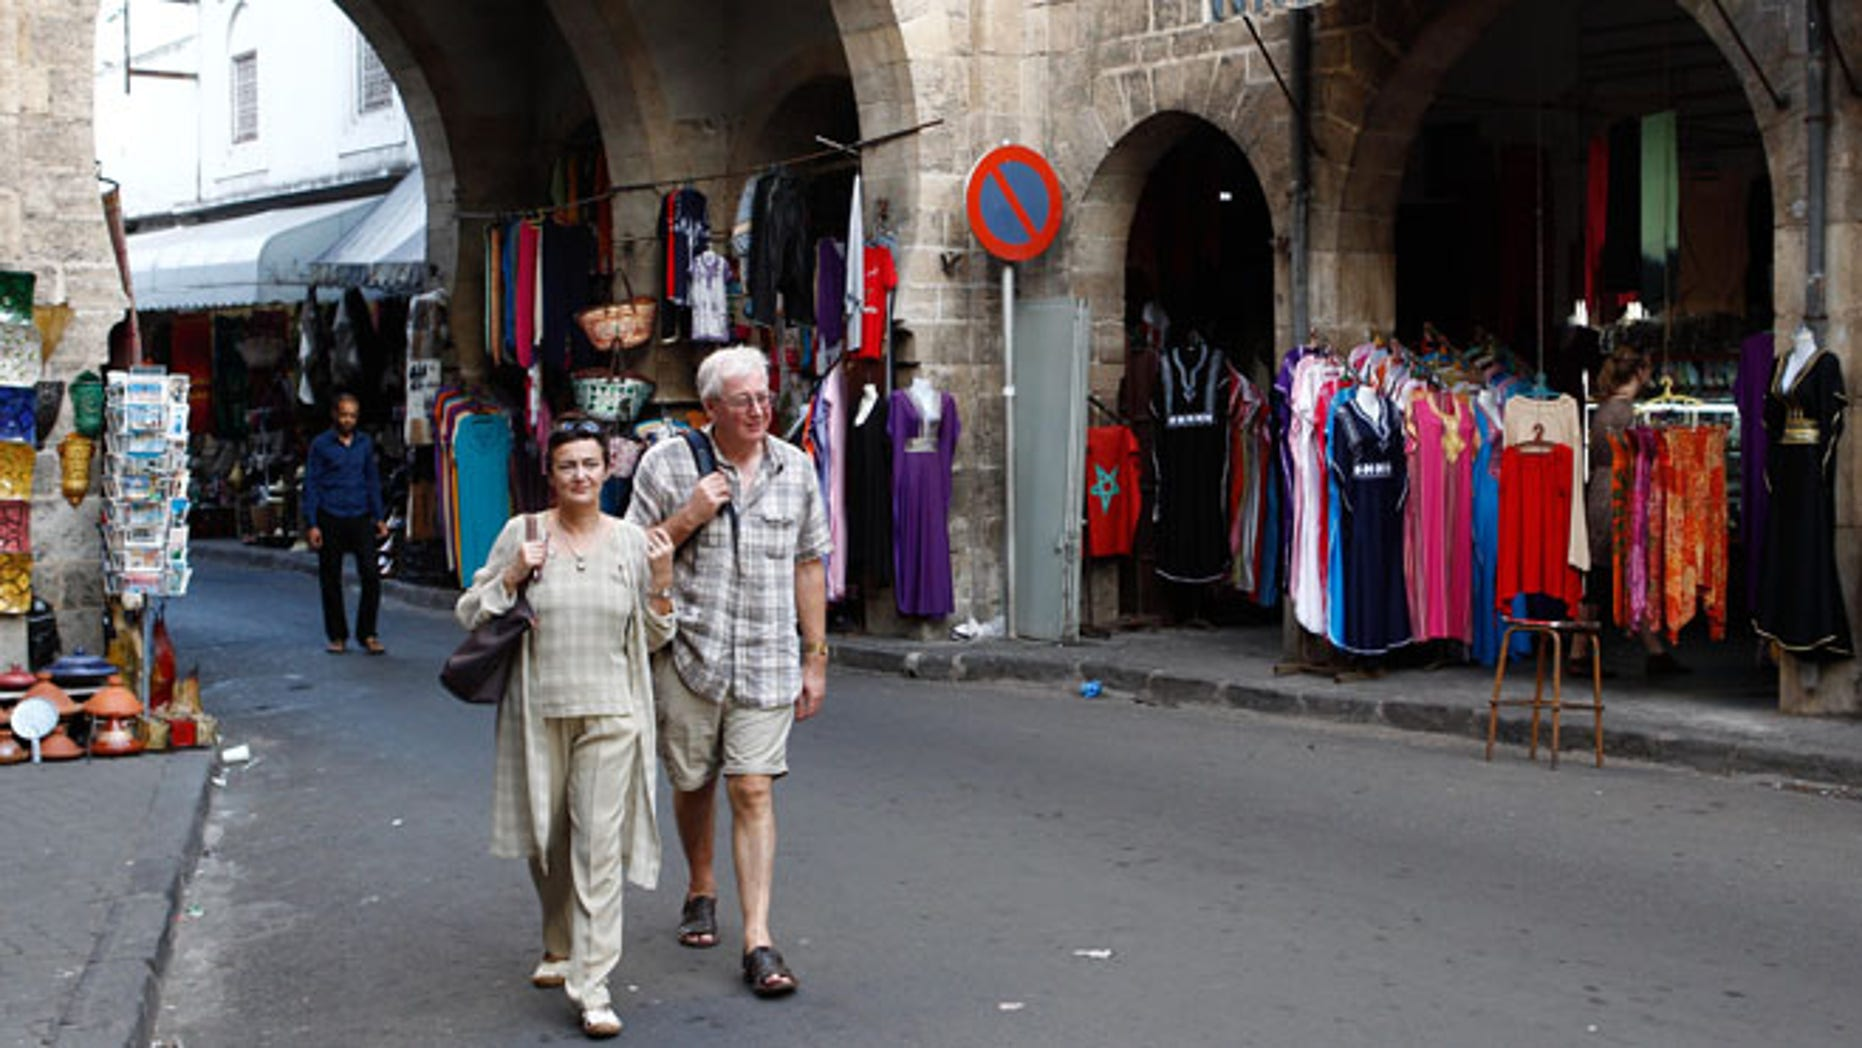 Oct. 7, 2012: Tourists stroll through Casablanca, Morocco's Habous district, built by the French in the 1920s to resemble a traditional Moroccan medina.